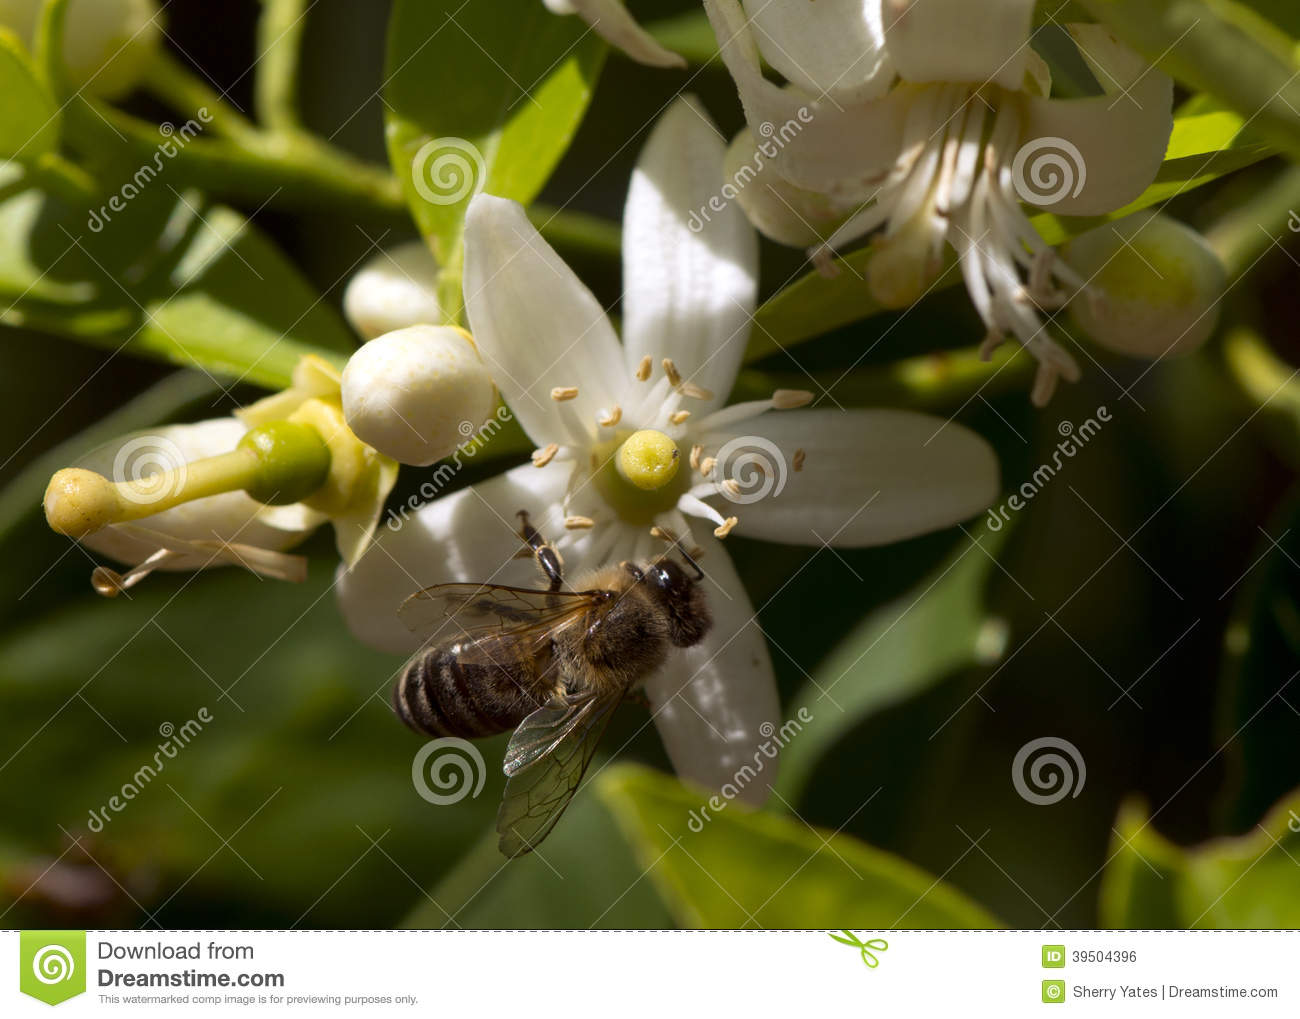 Lemon Tree Bee